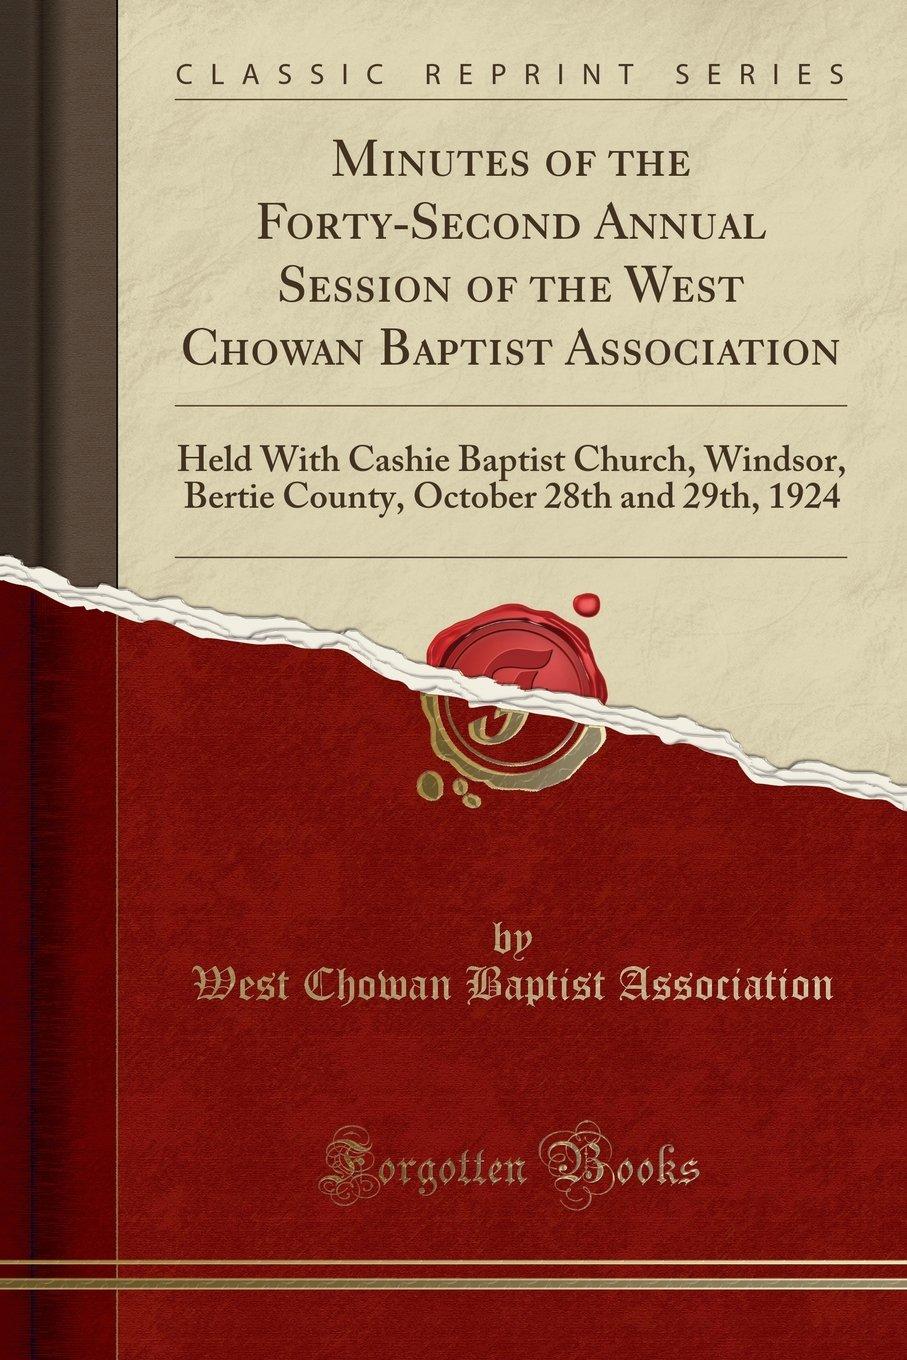 Minutes of the Forty-Second Annual Session of the West Chowan Baptist Association: Held with Cashie Baptist Church, Windsor, Bertie County, October 28th and 29th, 1924 (Classic Reprint) pdf epub